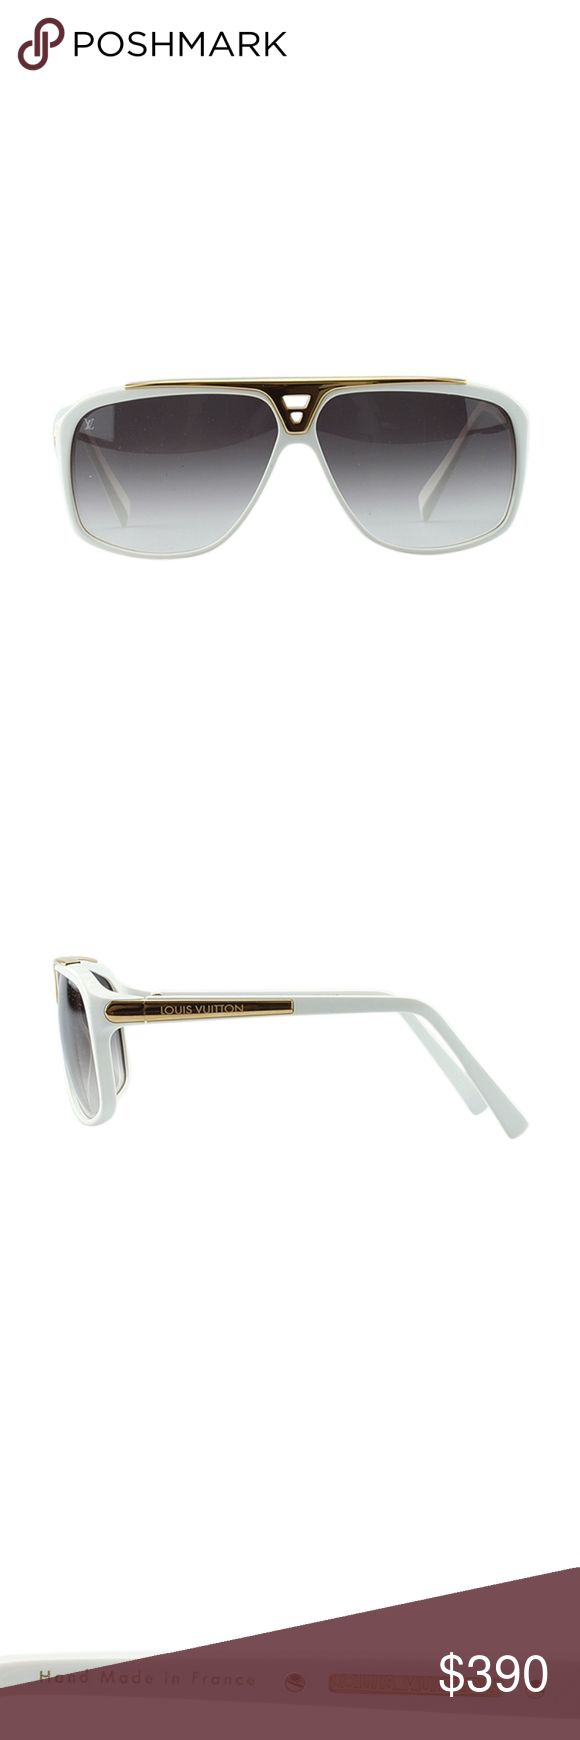 Louis Vuitton Z0351W Evidence Sunglasses 135640 •Designer: Louis Vuitton •Exterior Condition: Like New •Material: Metal & Plastic •Production Code: Z0351W •Frame Color: White •Overall Width of Frame: 4 •Lens Width: 3 •Frame Height: 2.5 •Bridge Width: .5 •Length to Bend: 3 •Overall Length to Side: 4 •Overall Condition Description: These Louis Vuitton Evidence sunglasses feature: -Exterior frames and frame arms show light scratches -Lenses show hairline scratches -Gold tone hardware shows…